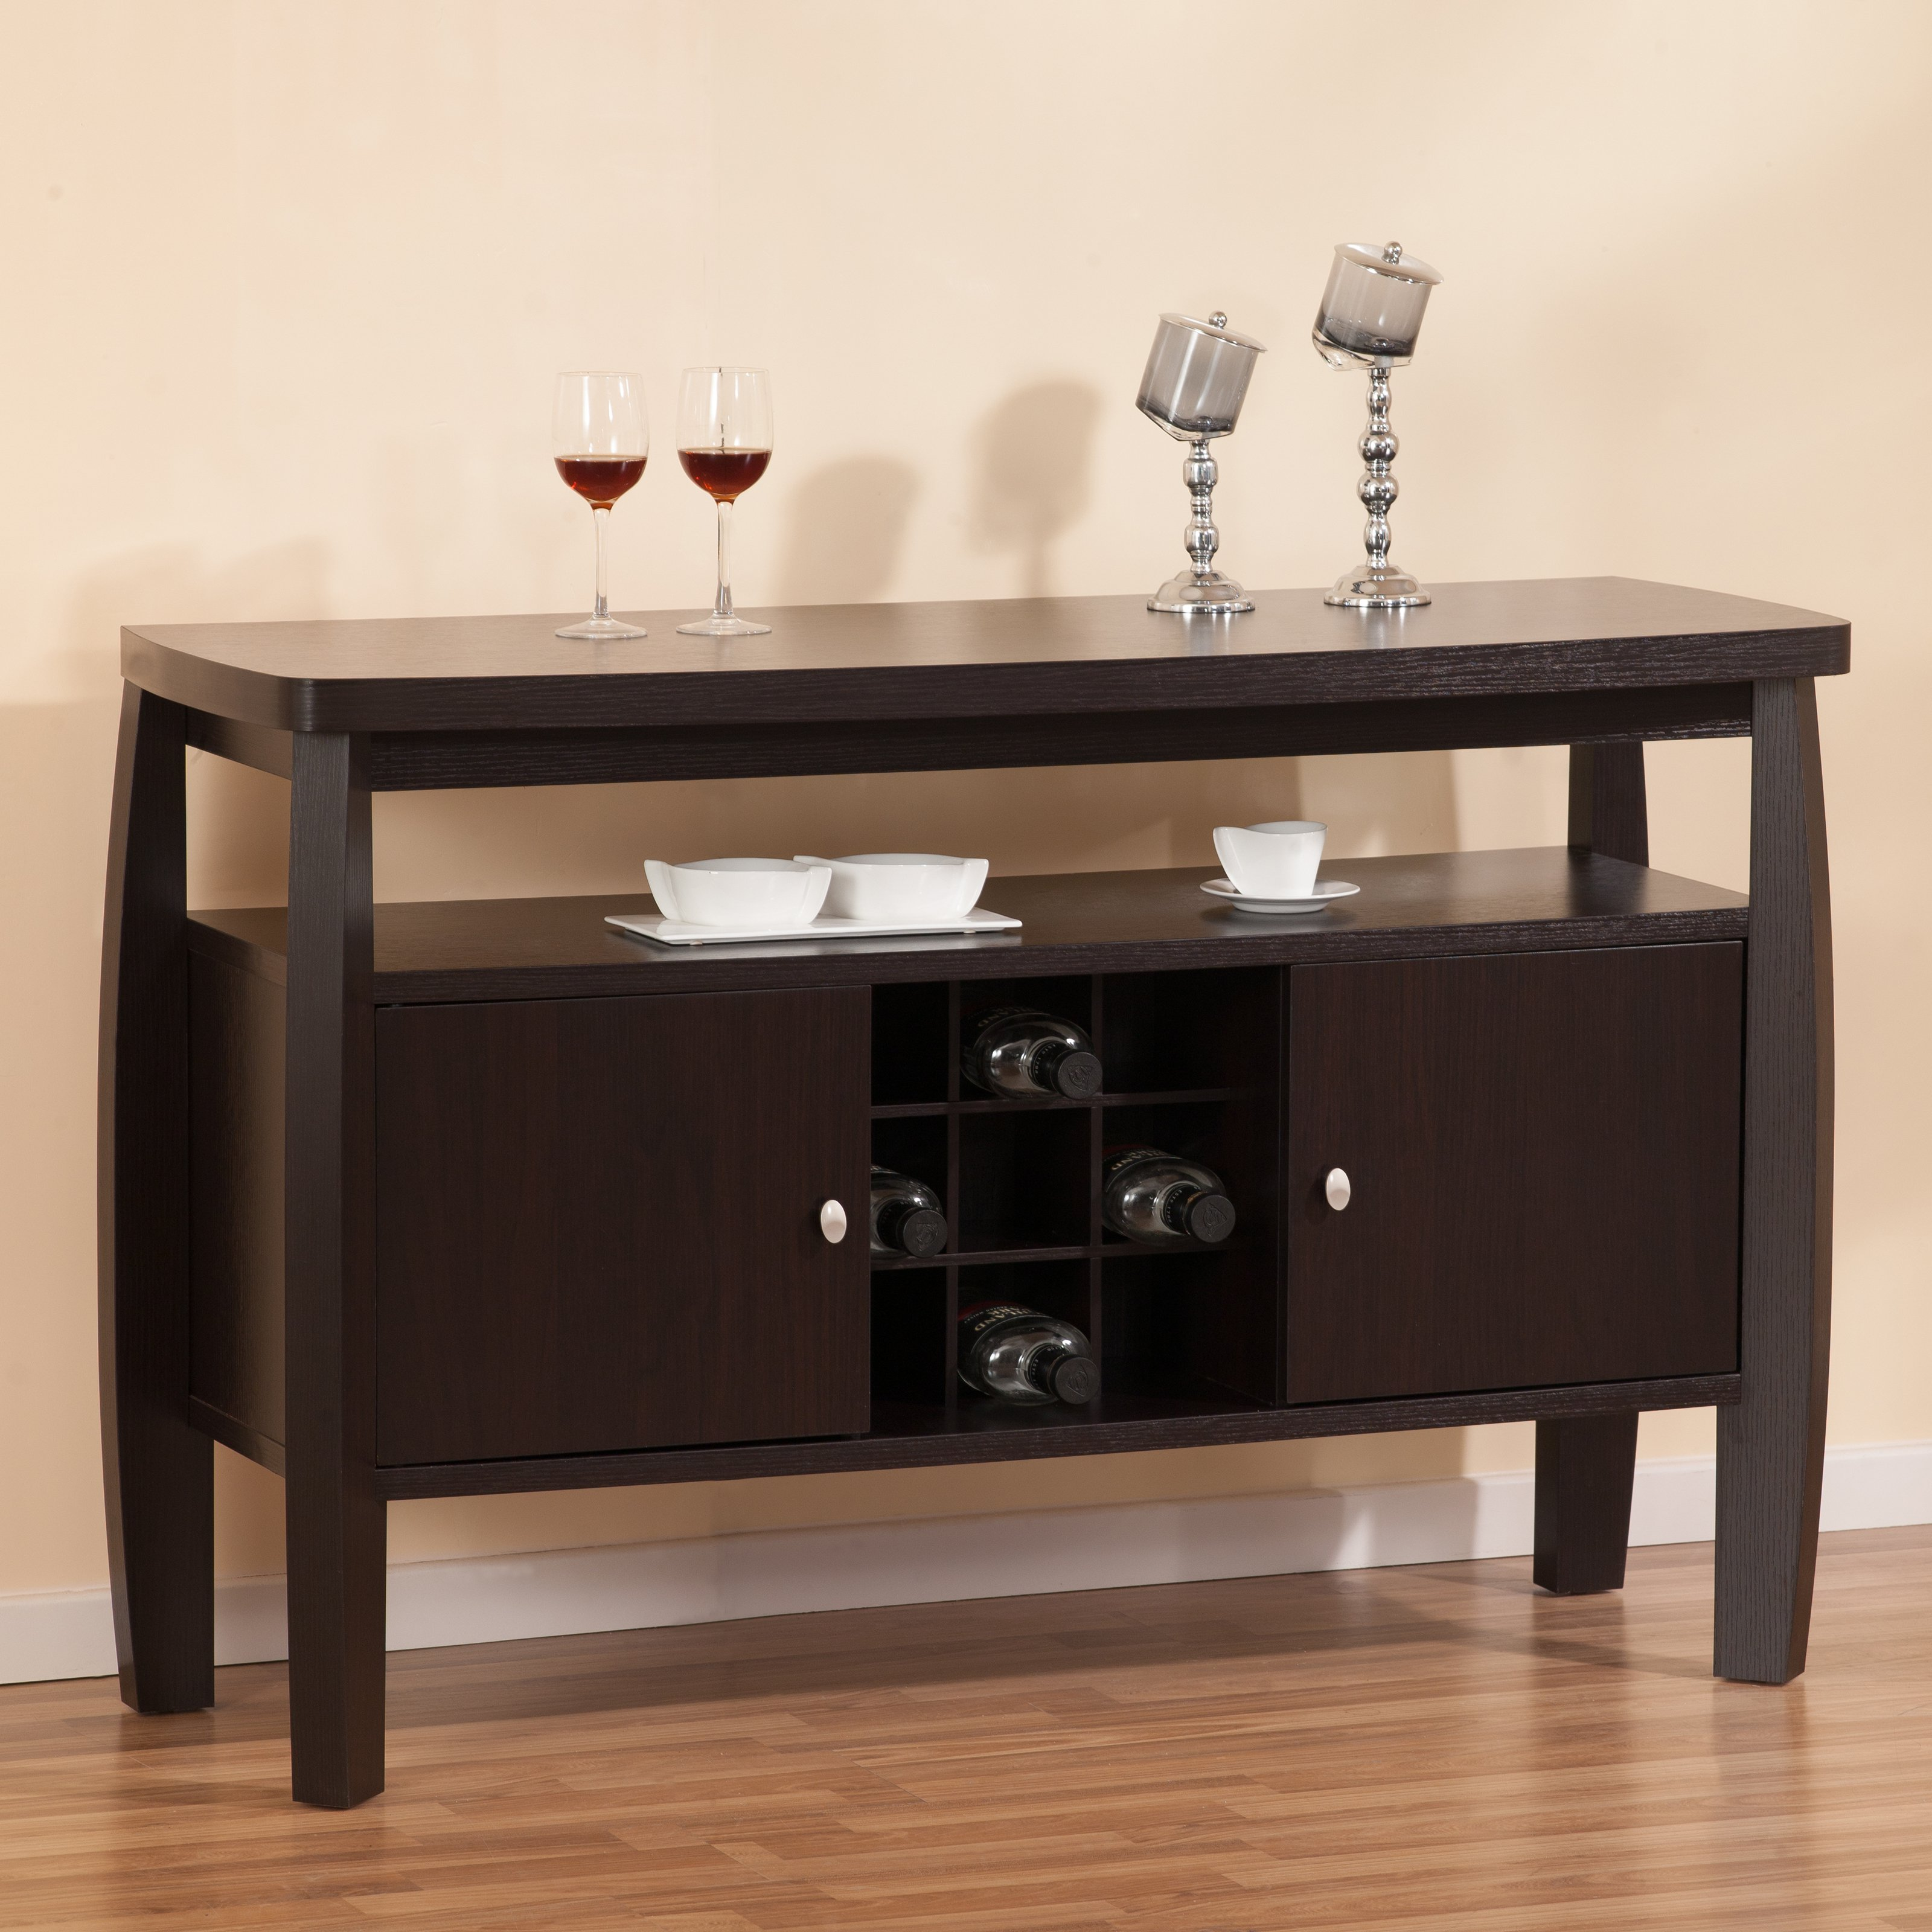 Furniture of America Nova Dining Buffet Table with 9-Bottle Rack by Enitial Lab